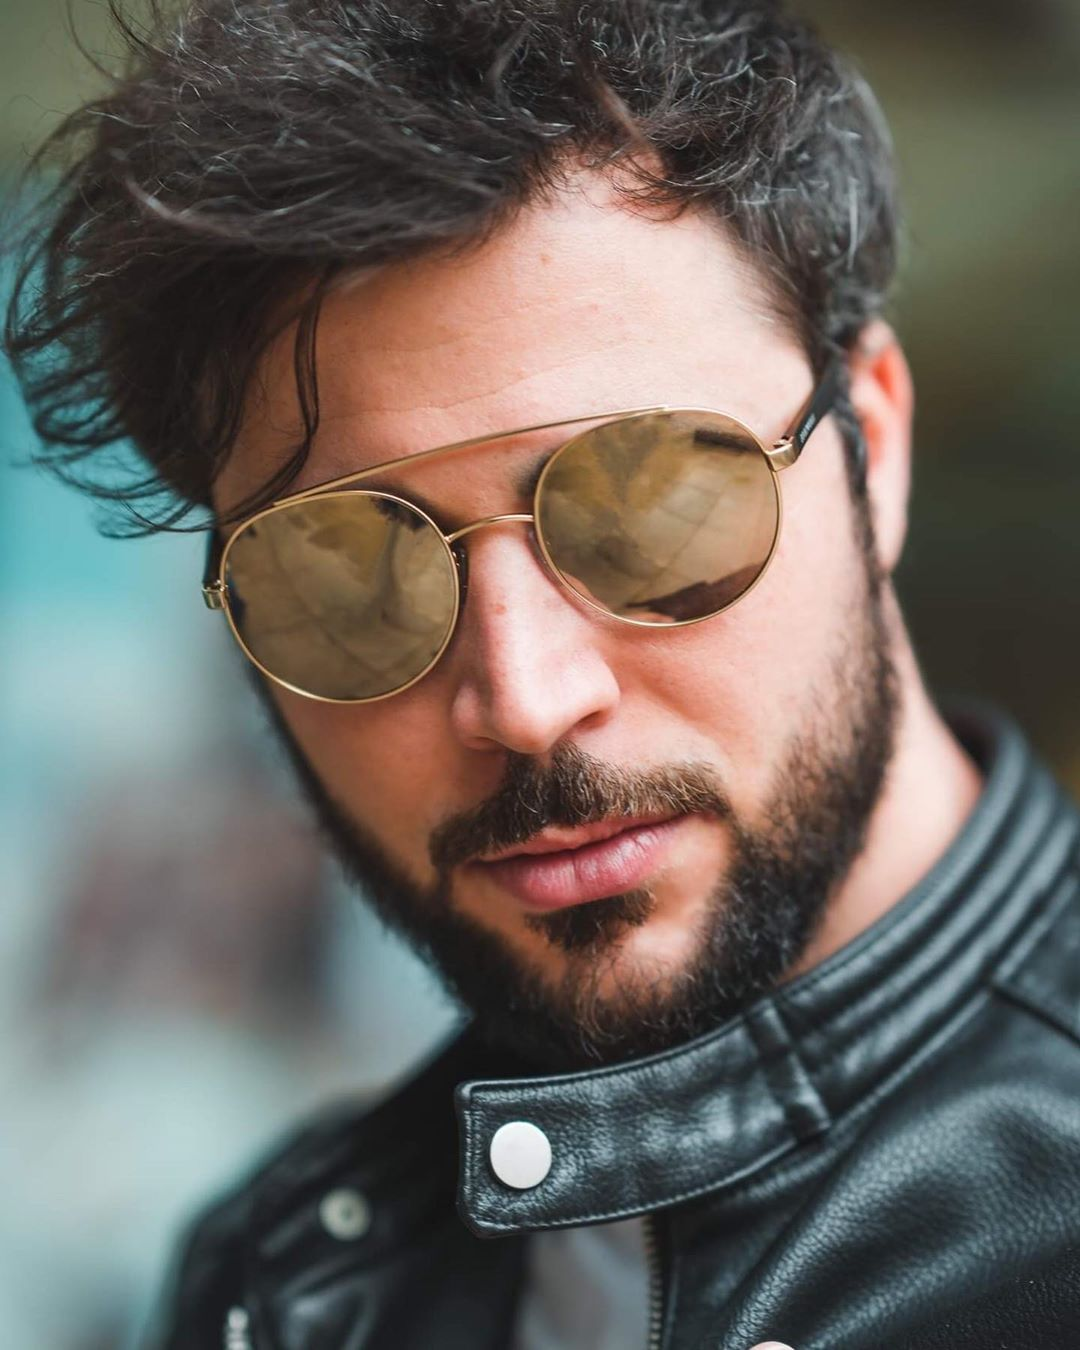 In case you're wondering how to easily get a cool, effortless look: Grab round Armani sunglasses, et voil, get the trendy retro vibe. #lentiamo #armani #browline #retro #cool